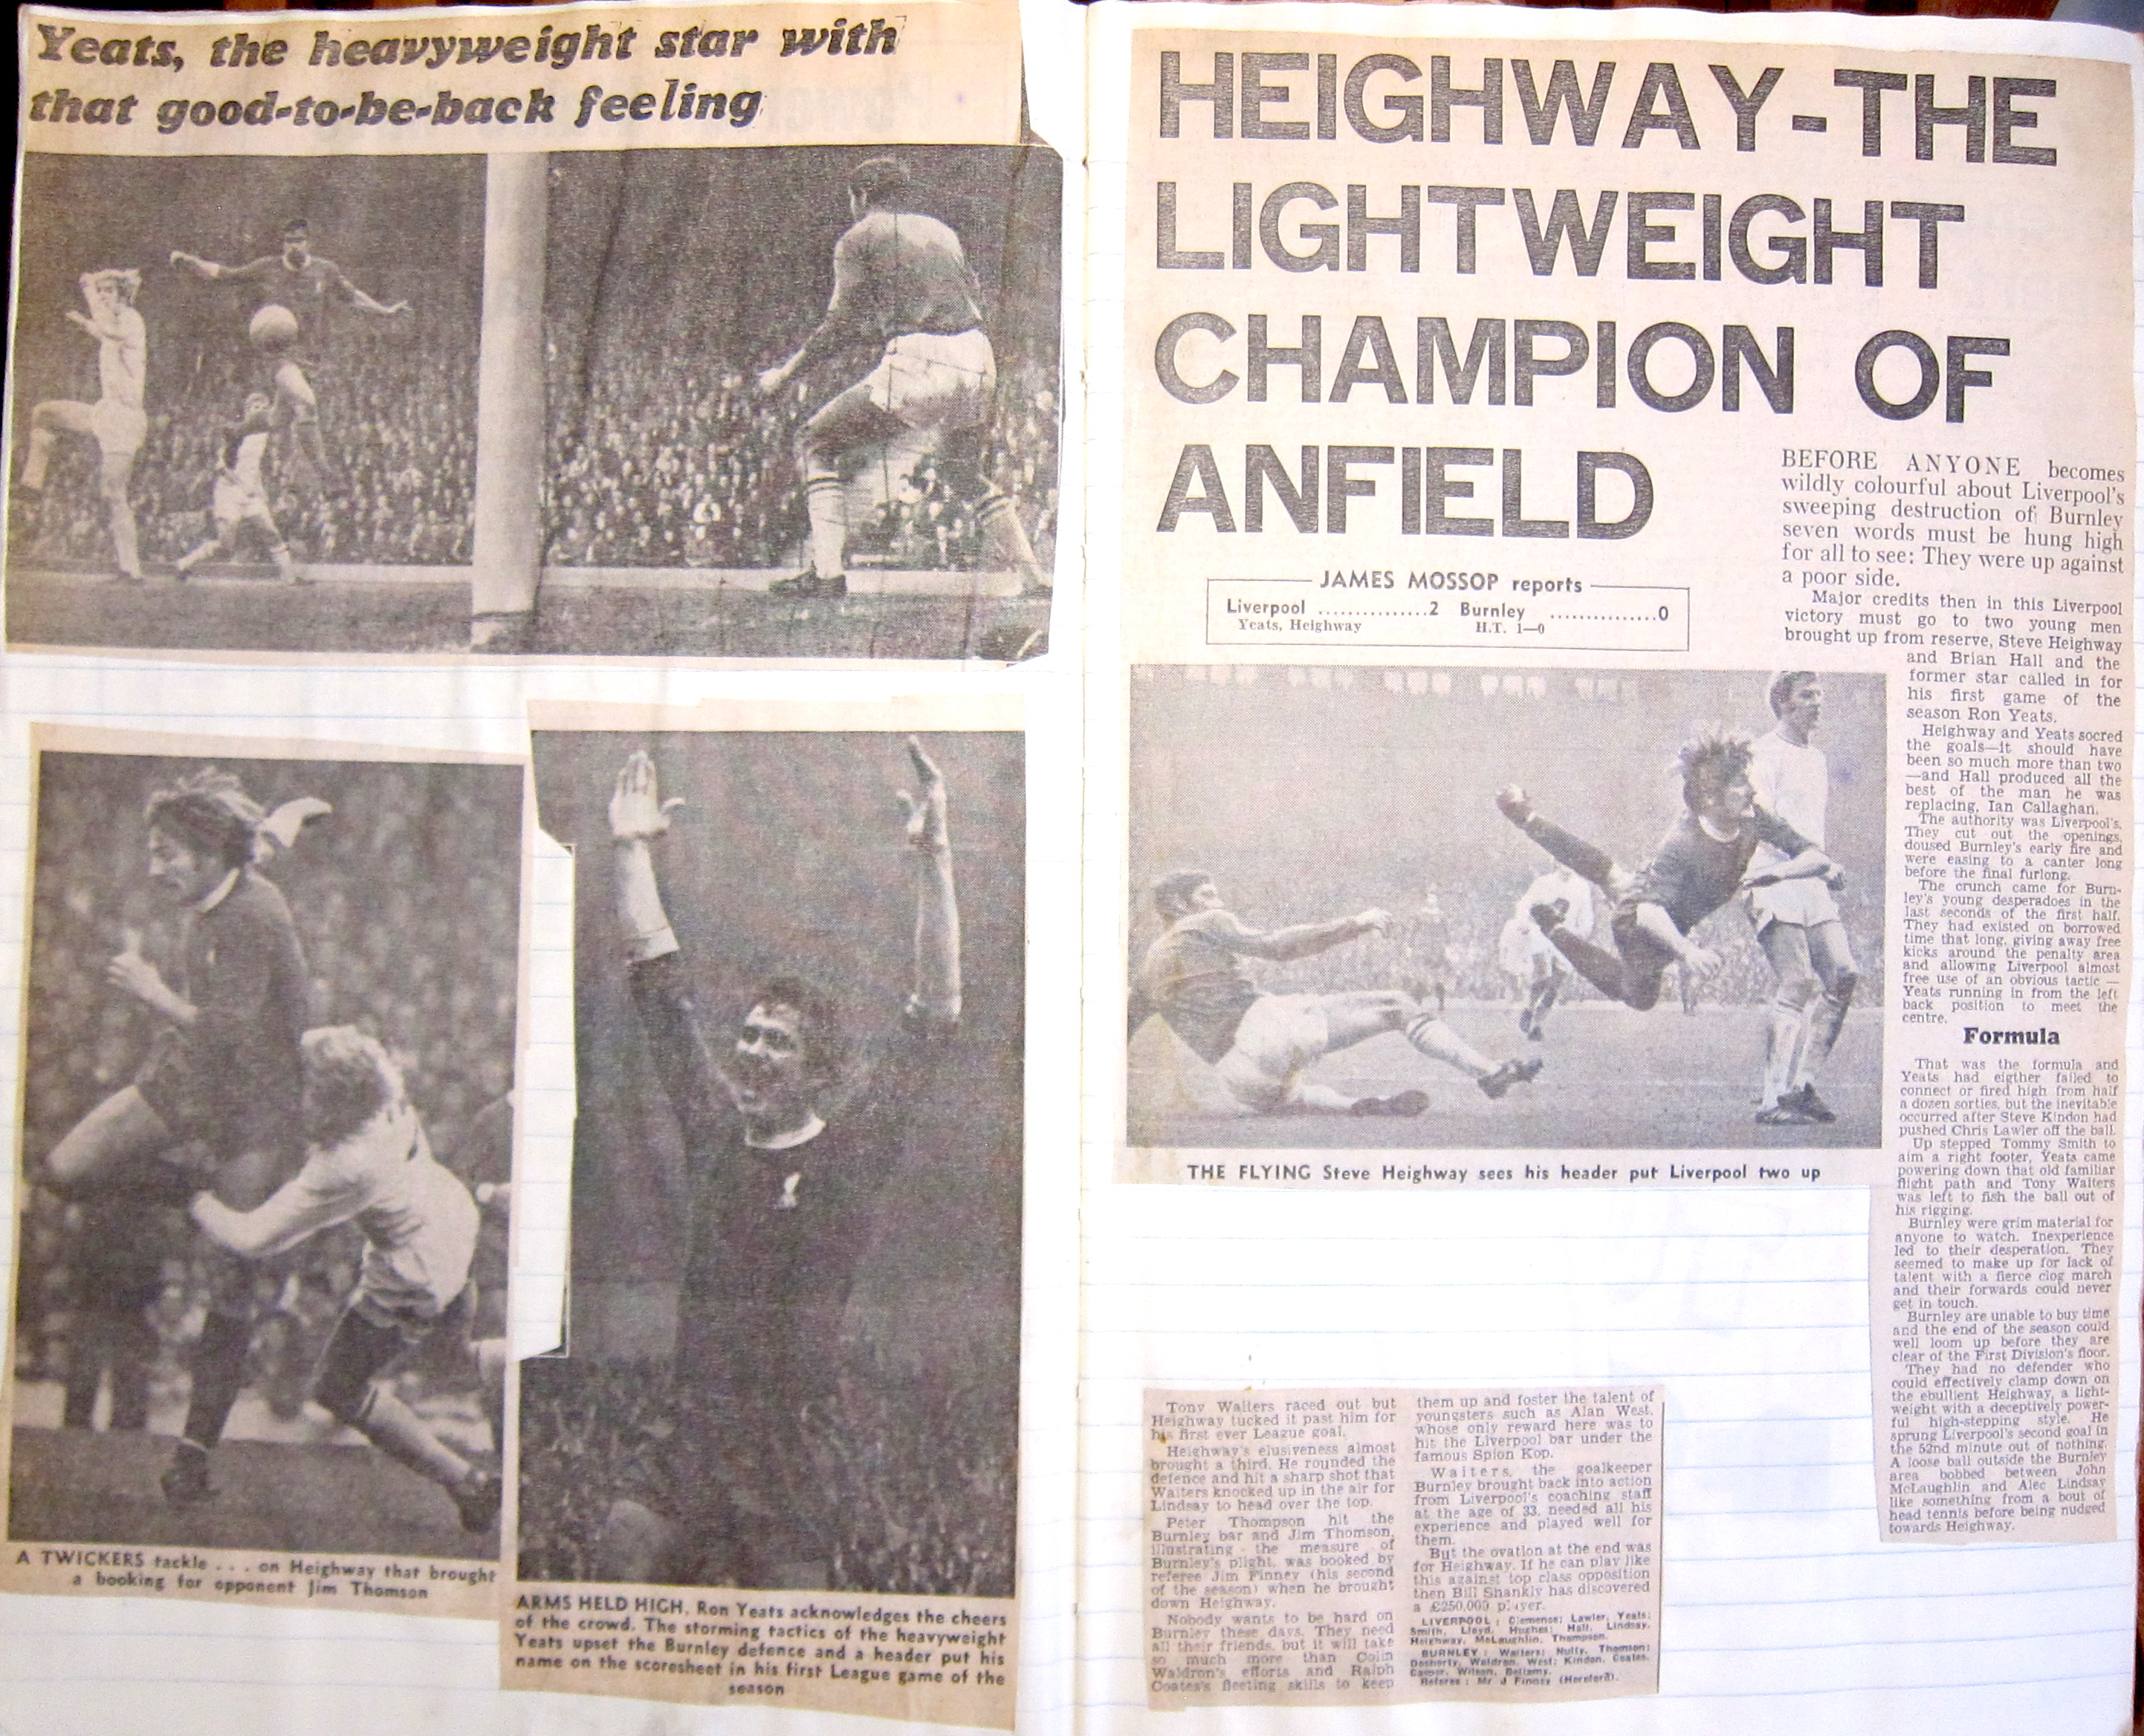 The return of Rowdy! - 17 October 1970